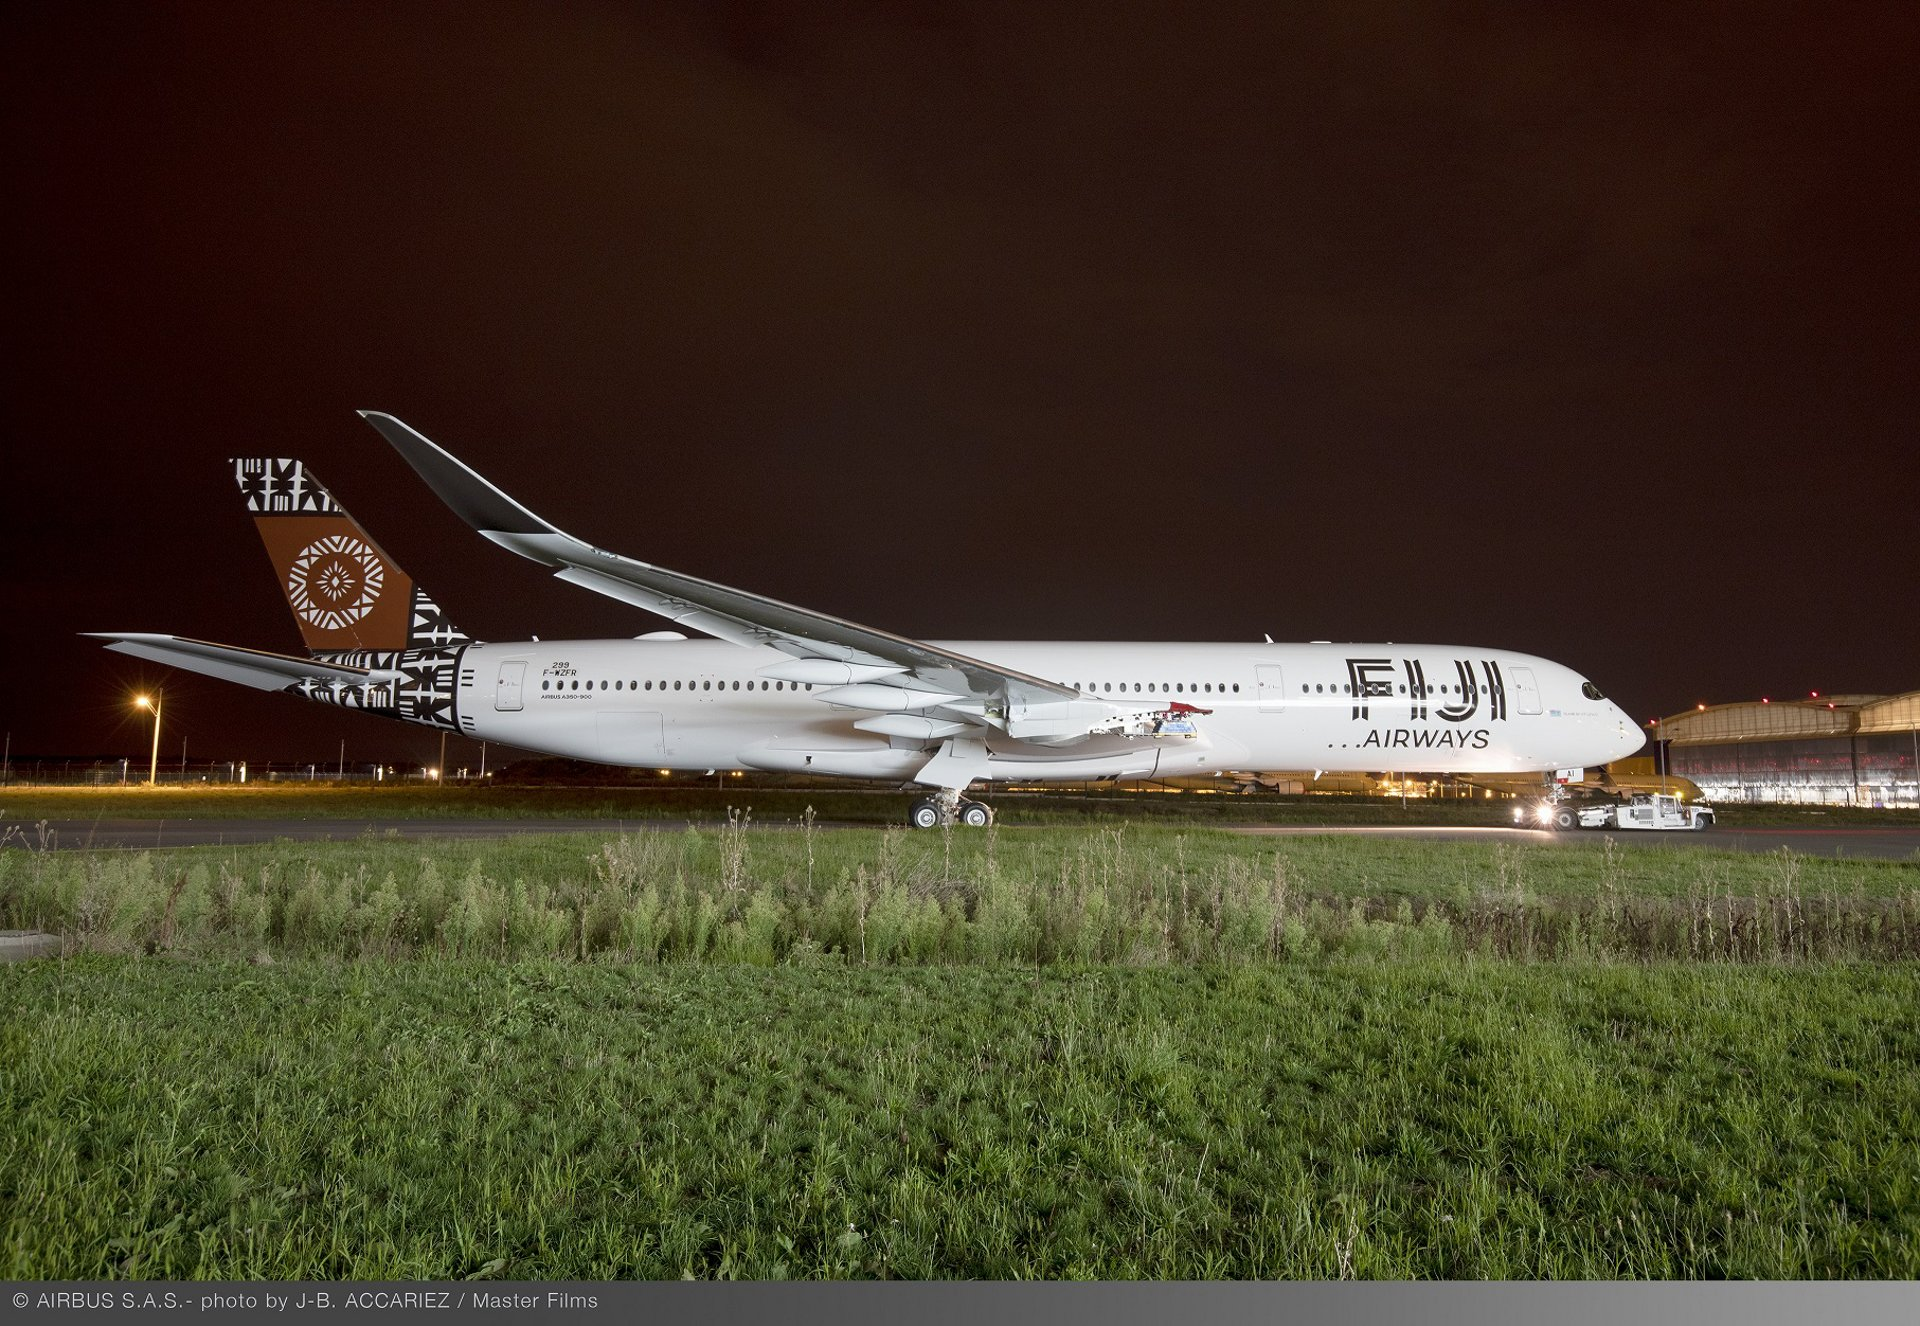 The first A350-900 for delivery to Fiji Airways – which received its signature livery at the Airbus paint shop in Toulouse, France –  will be deployed to enhance existing long-haul services from Fiji to Australia and the U.S.